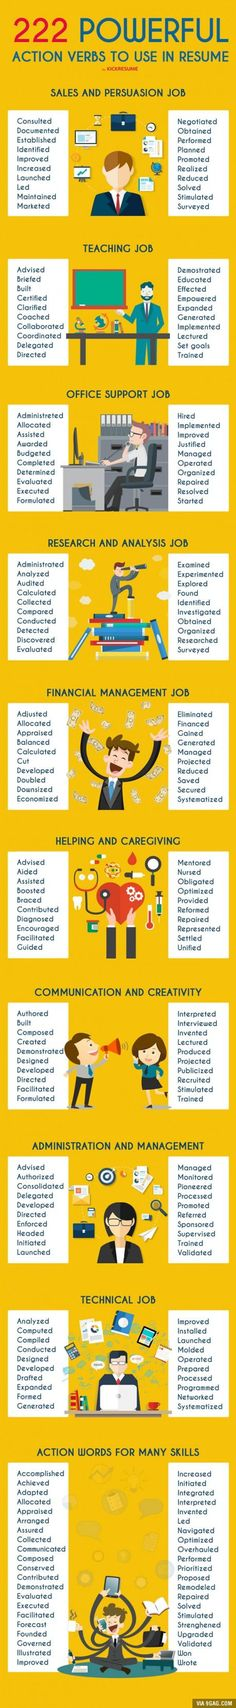 Resume Cheat Sheet: 222 Action Verbs To Use In Your New Resume Repinned by…